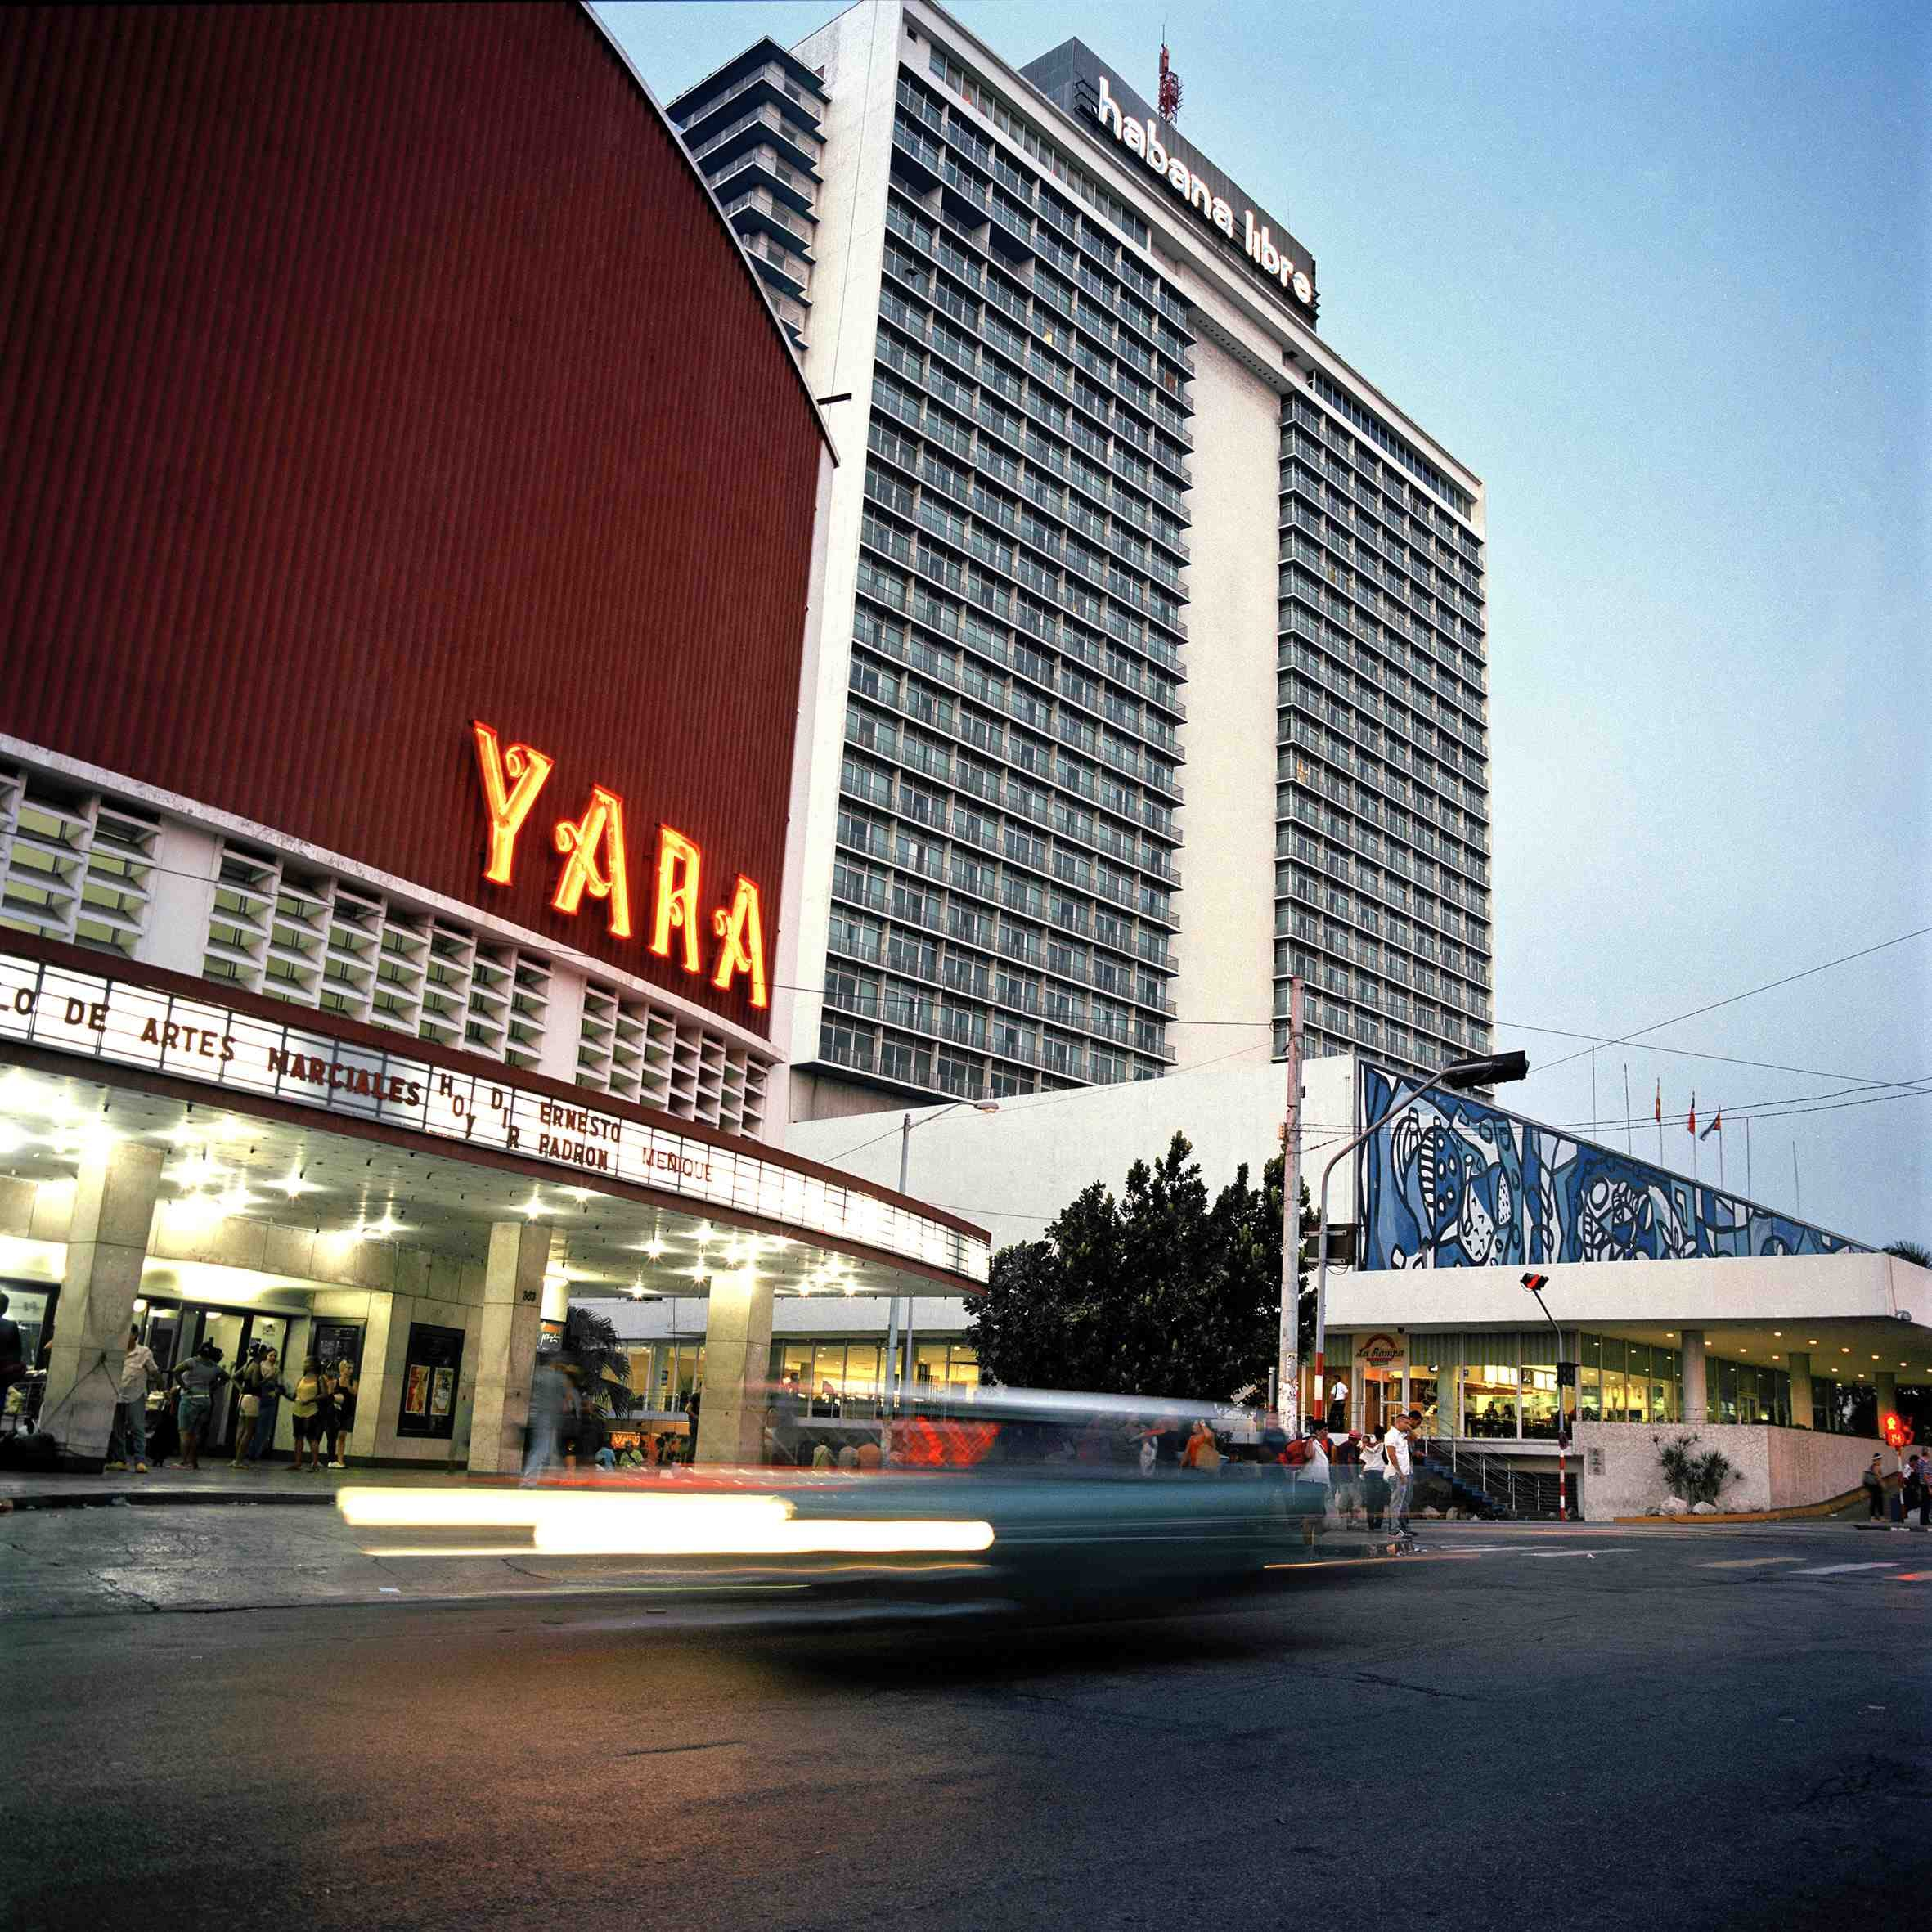 The Yara is another popular movie theatre.